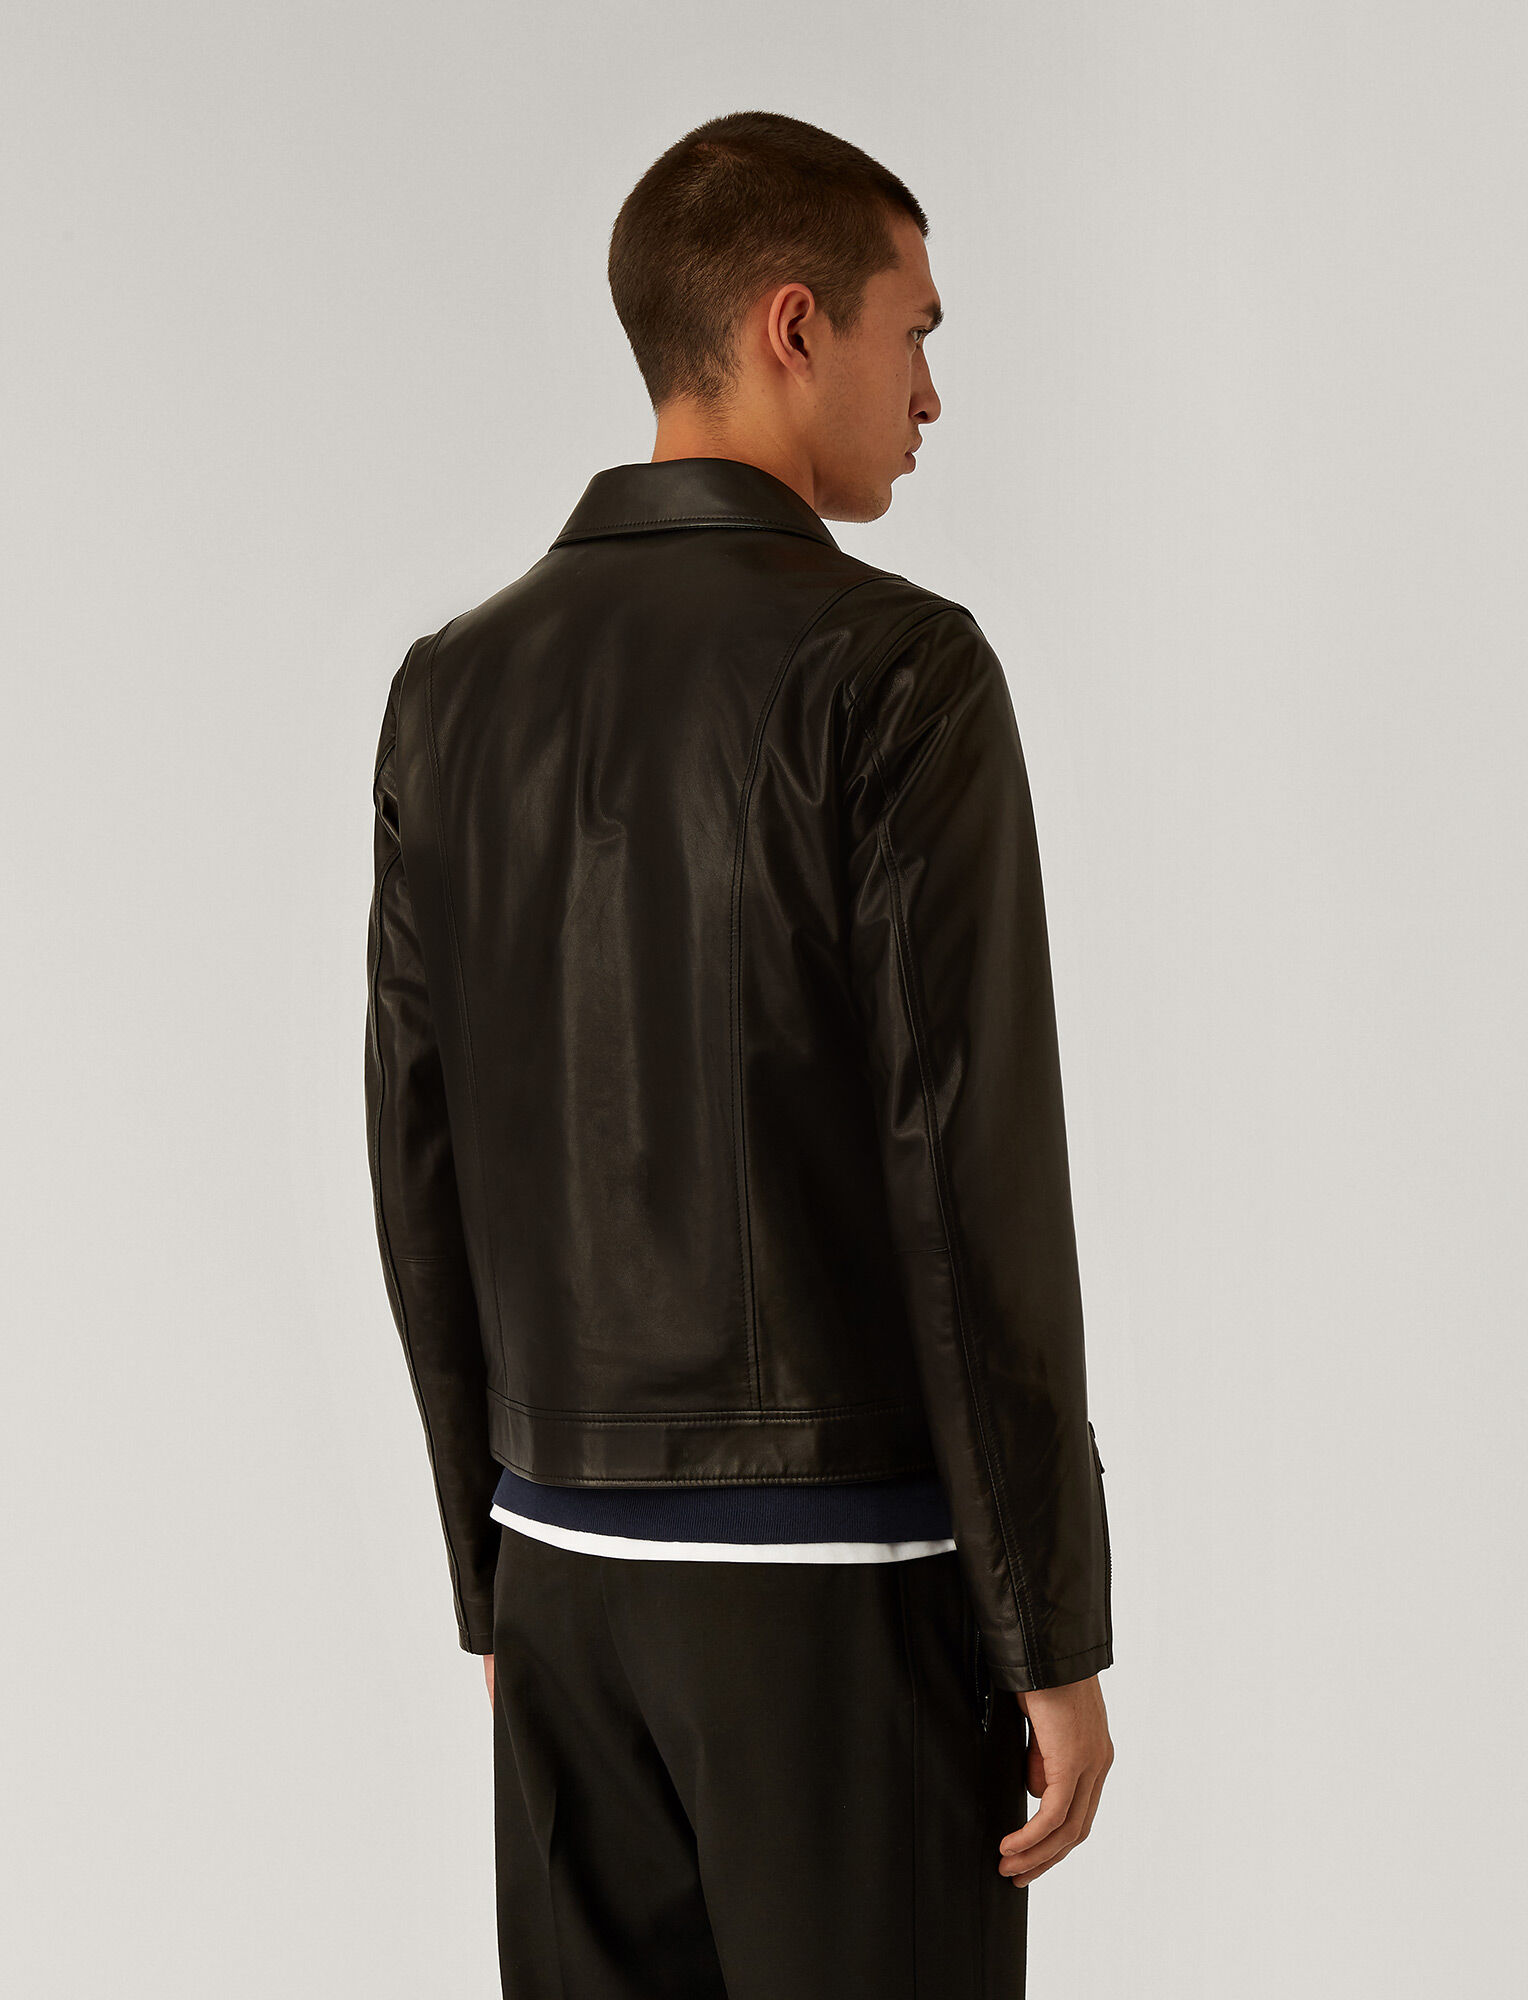 Joseph, Lamb Leather Jacket, in Black